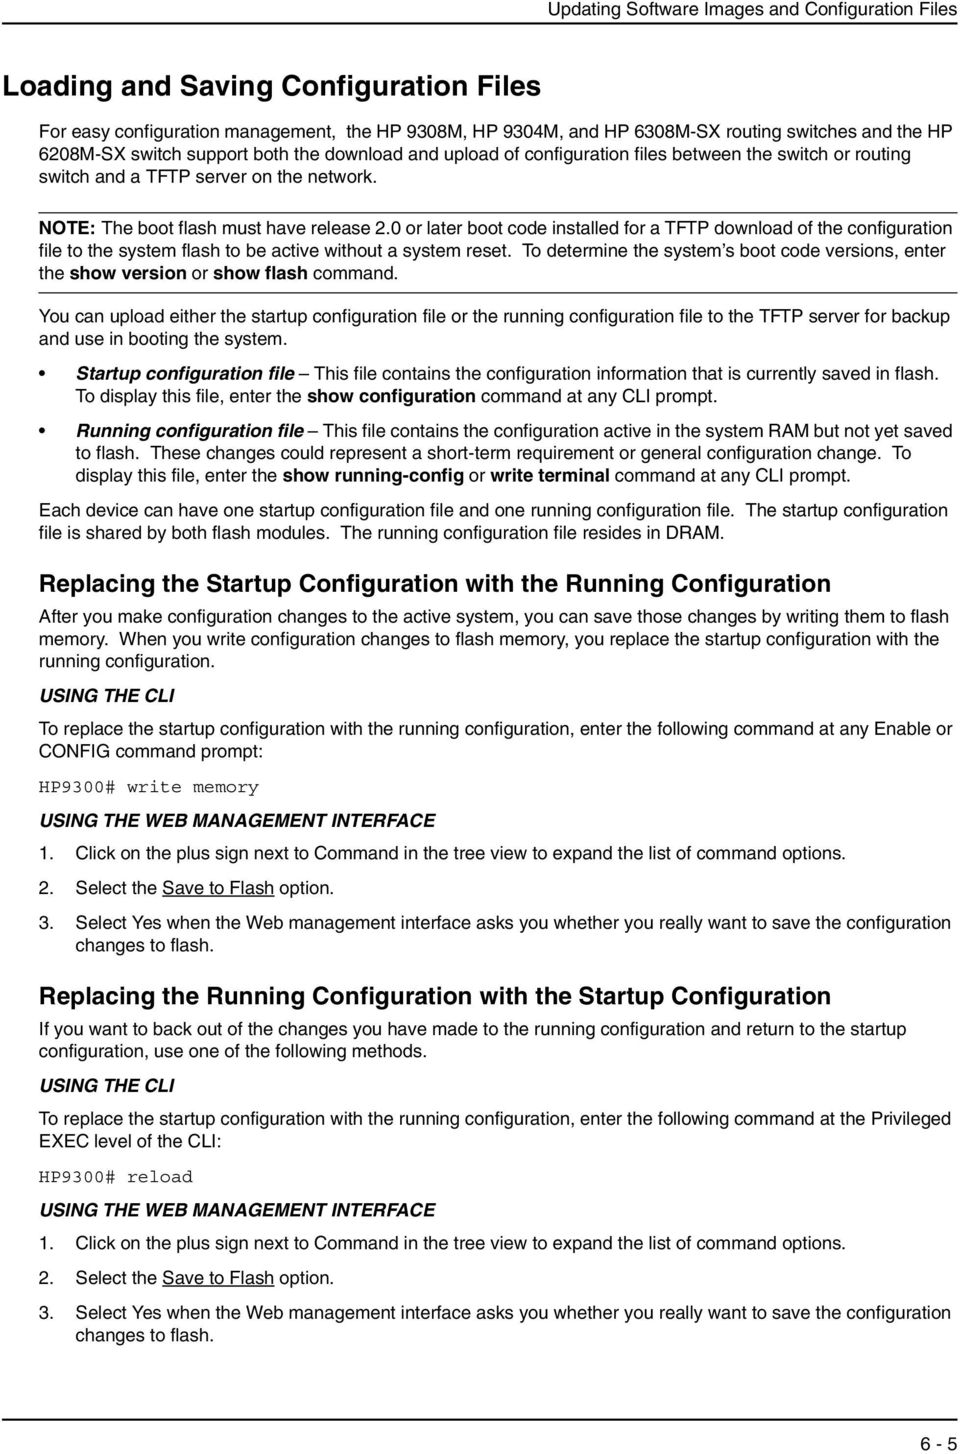 Chapter 6 Updating Software Images and Configuration Files - PDF